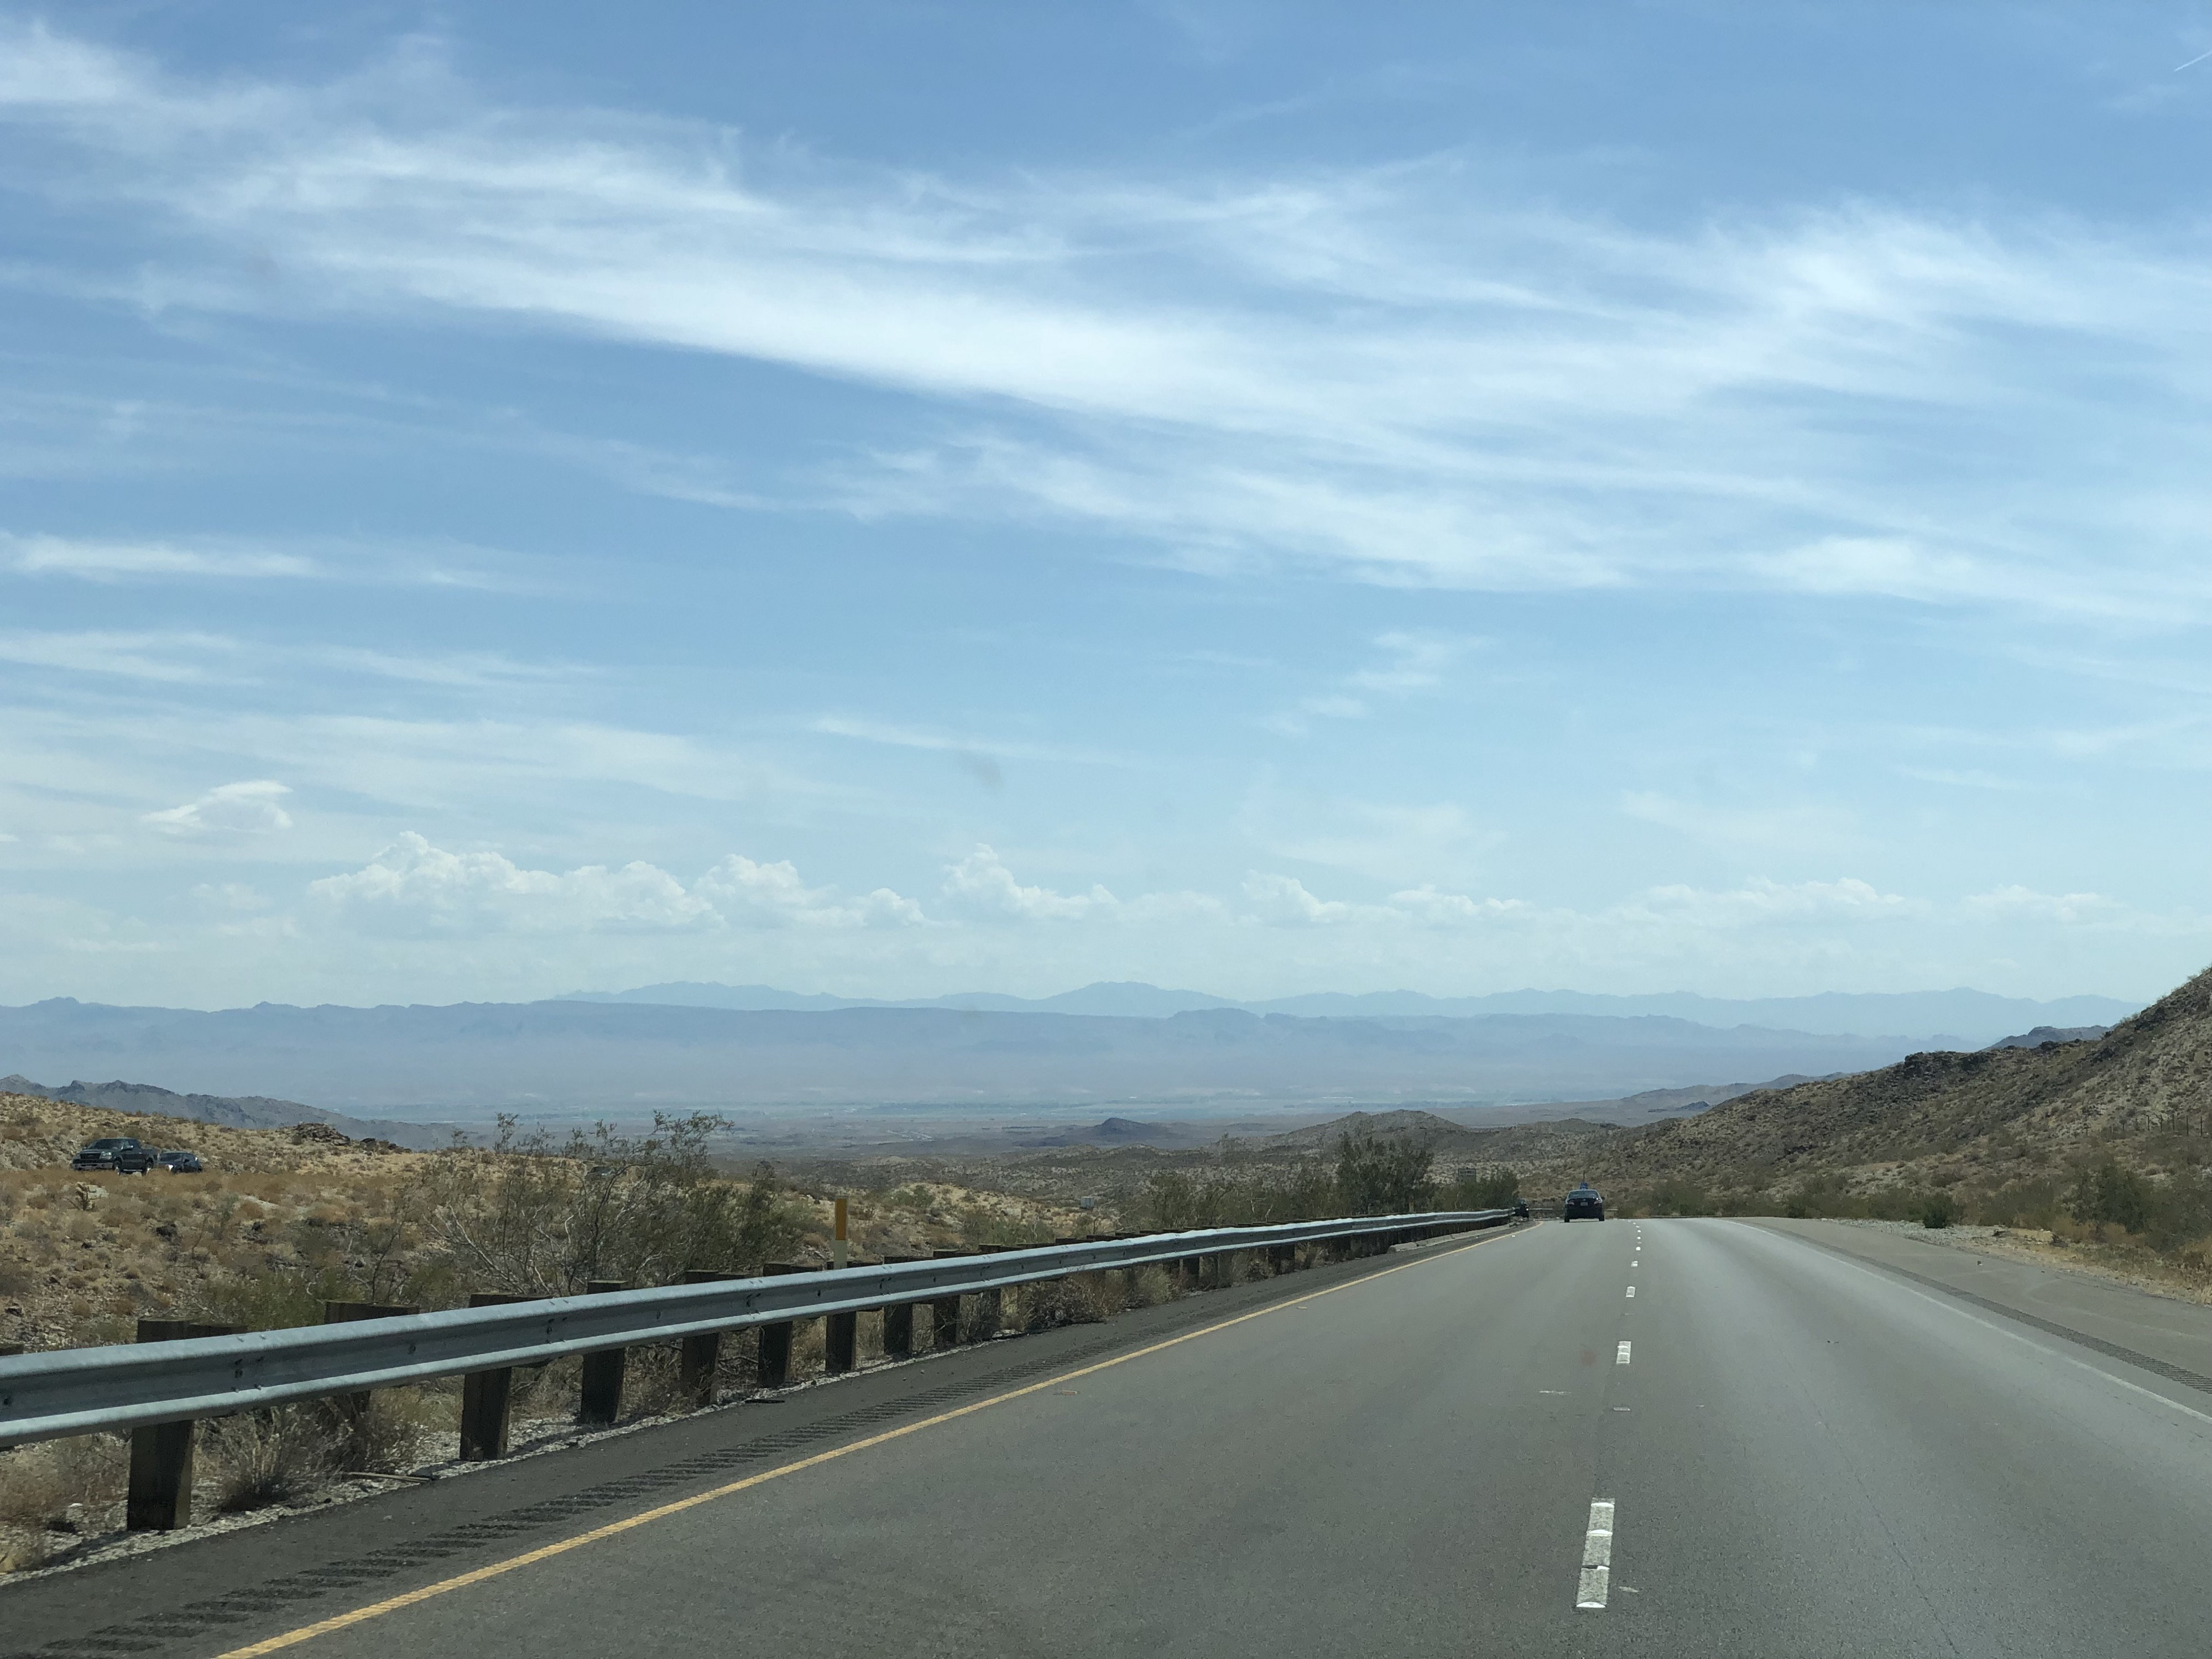 Picture taken from a car on a highway on a hillside, showing an expansive view of a desert basin and far-off mountains.